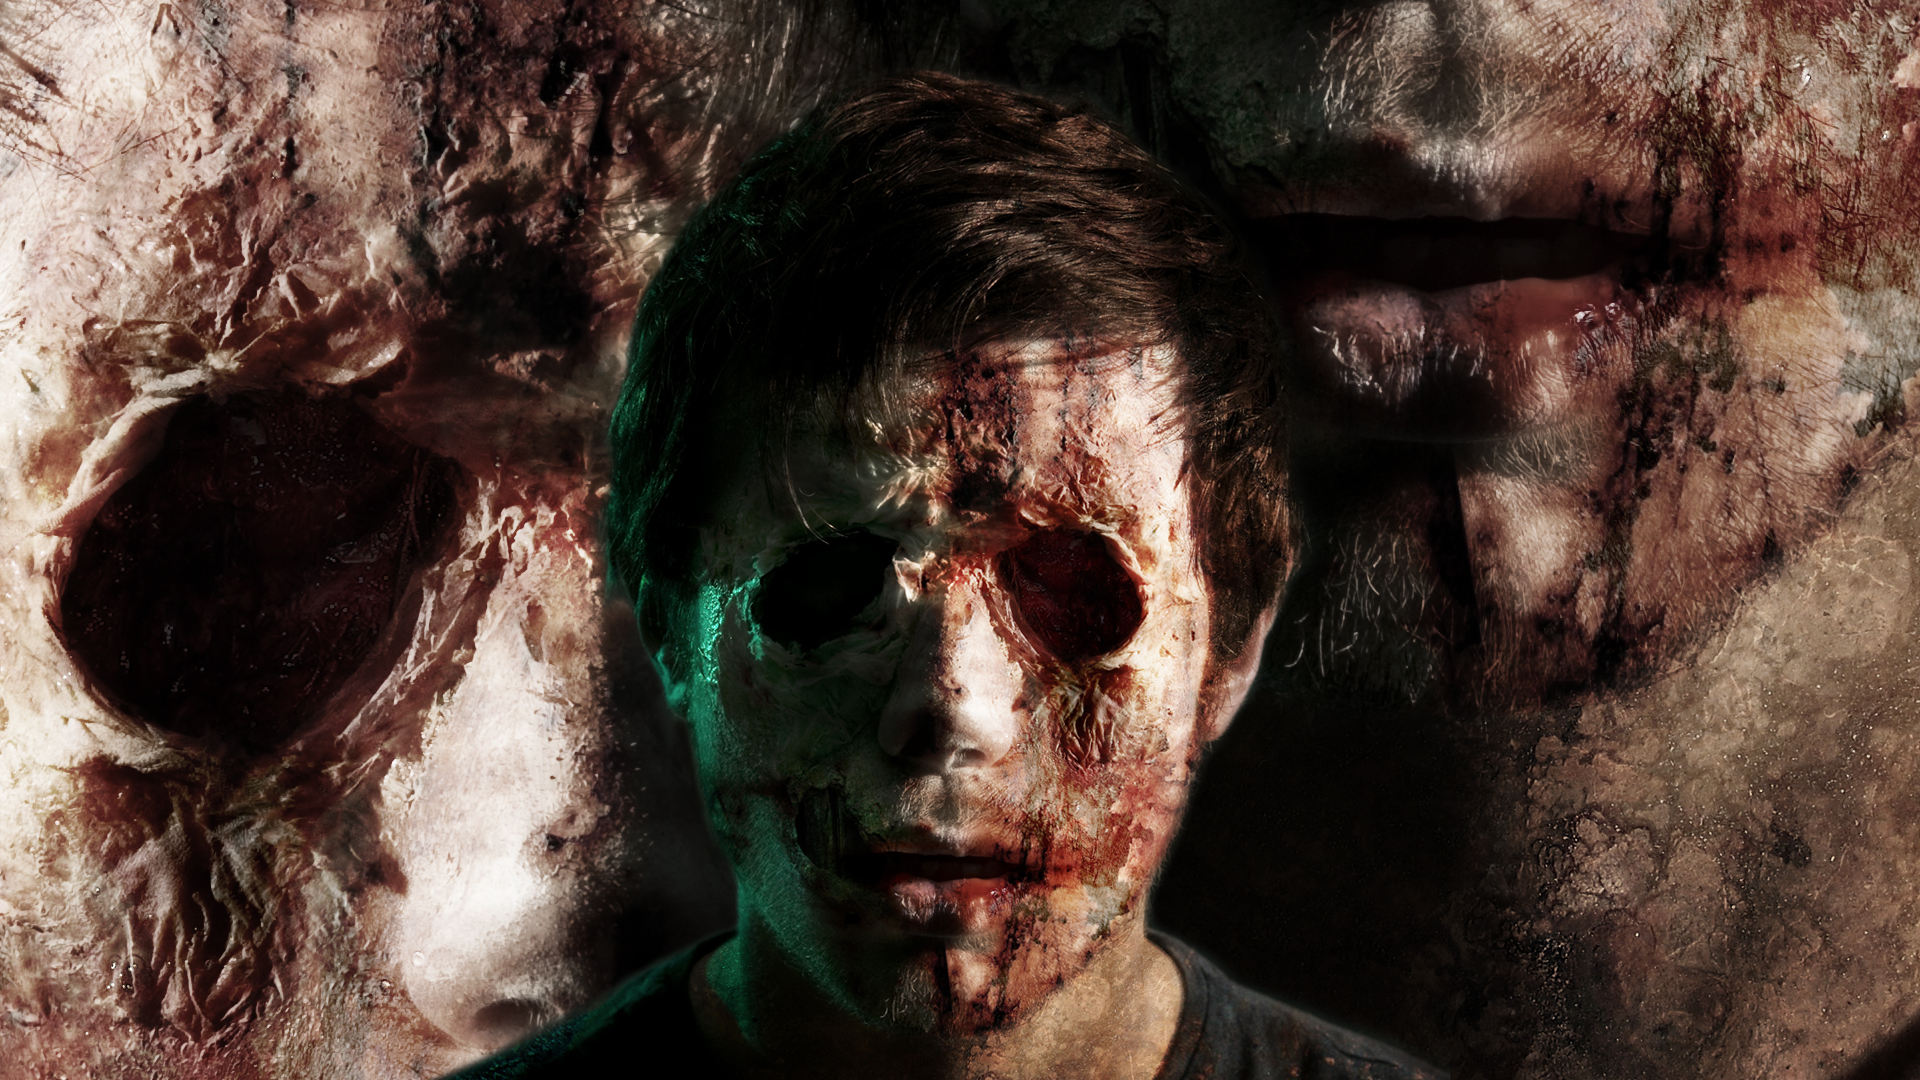 Hd wallpaper zombie - No_eyes_zombie_wallpaper_hd_by_fury24_my_madness D3c8avu Jpg No_eyes_zombie_wallpaper_hd_by_fury24_my_madness D3c8avu Jpg 0 Html Code Zombies Wallpaper Hd